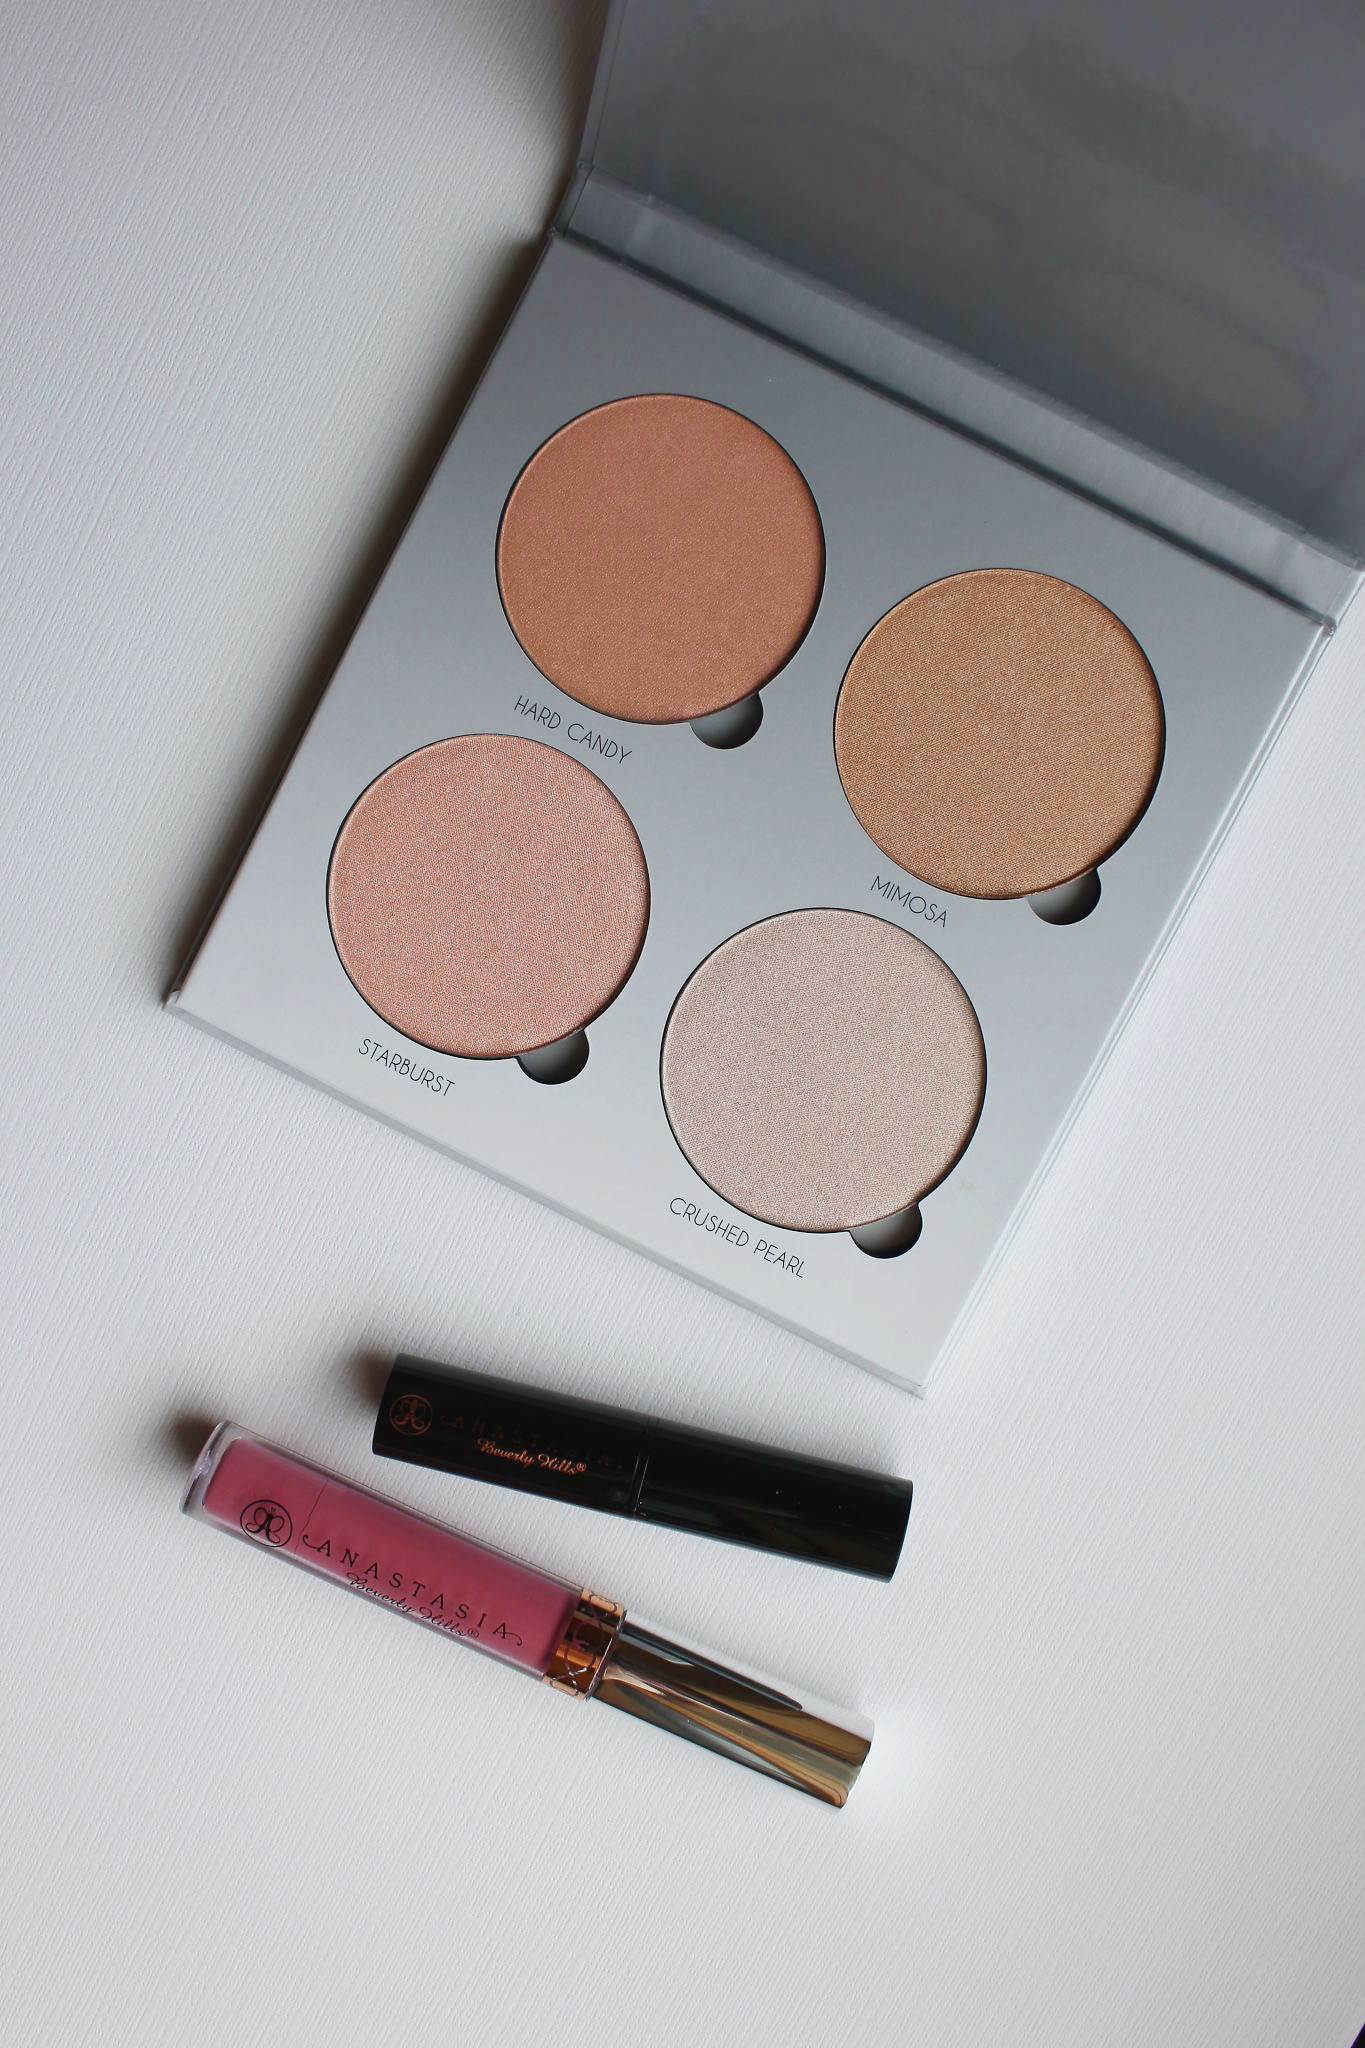 3 New Products by Anastasia